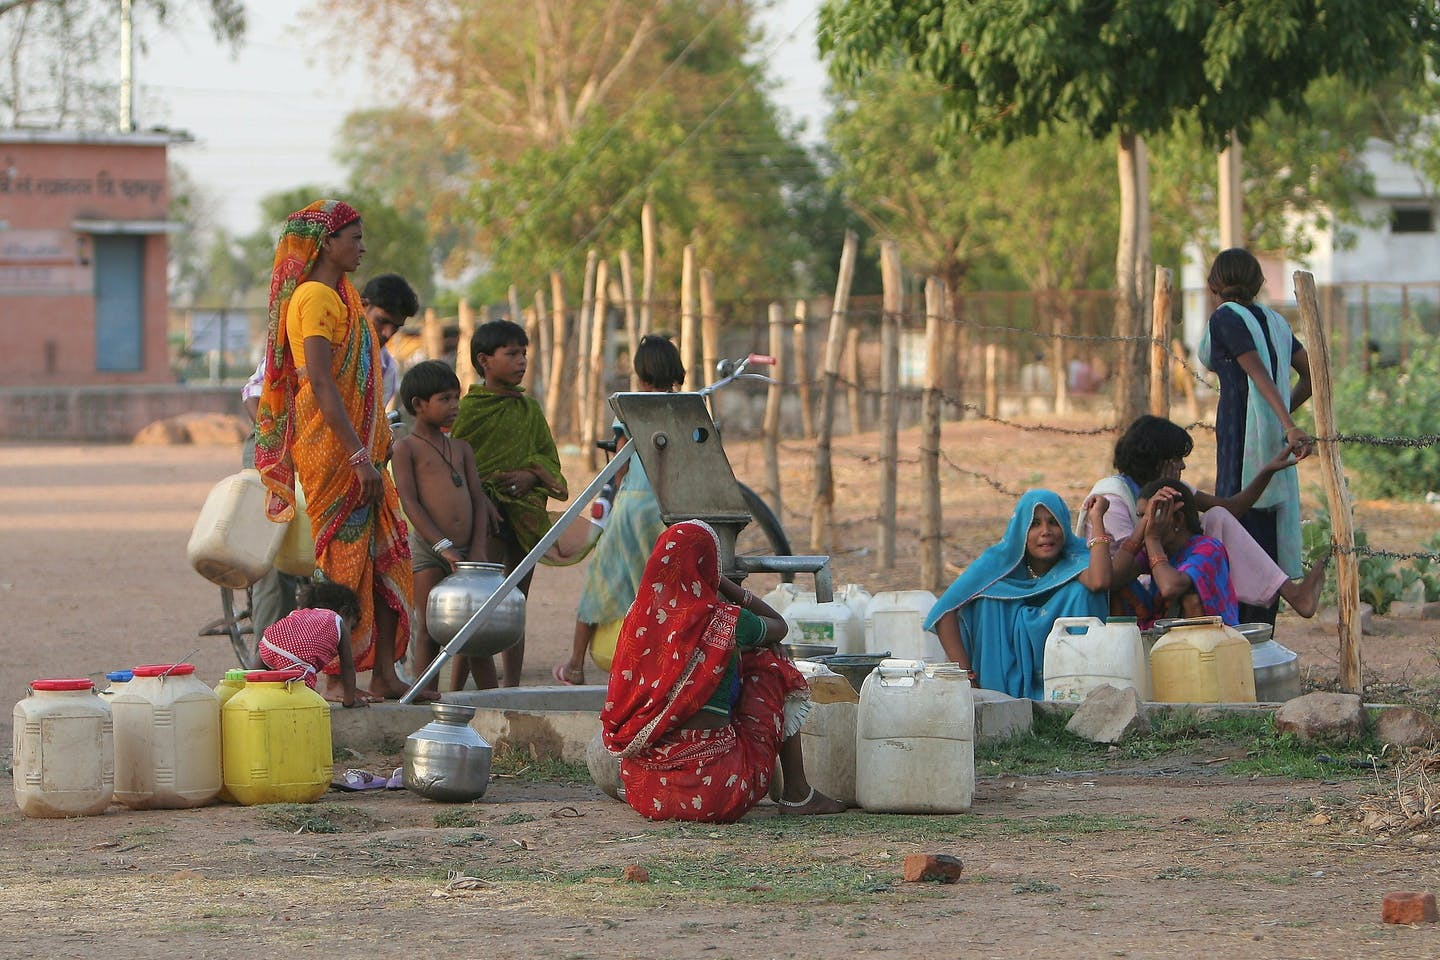 Collecting water in Rajasthan